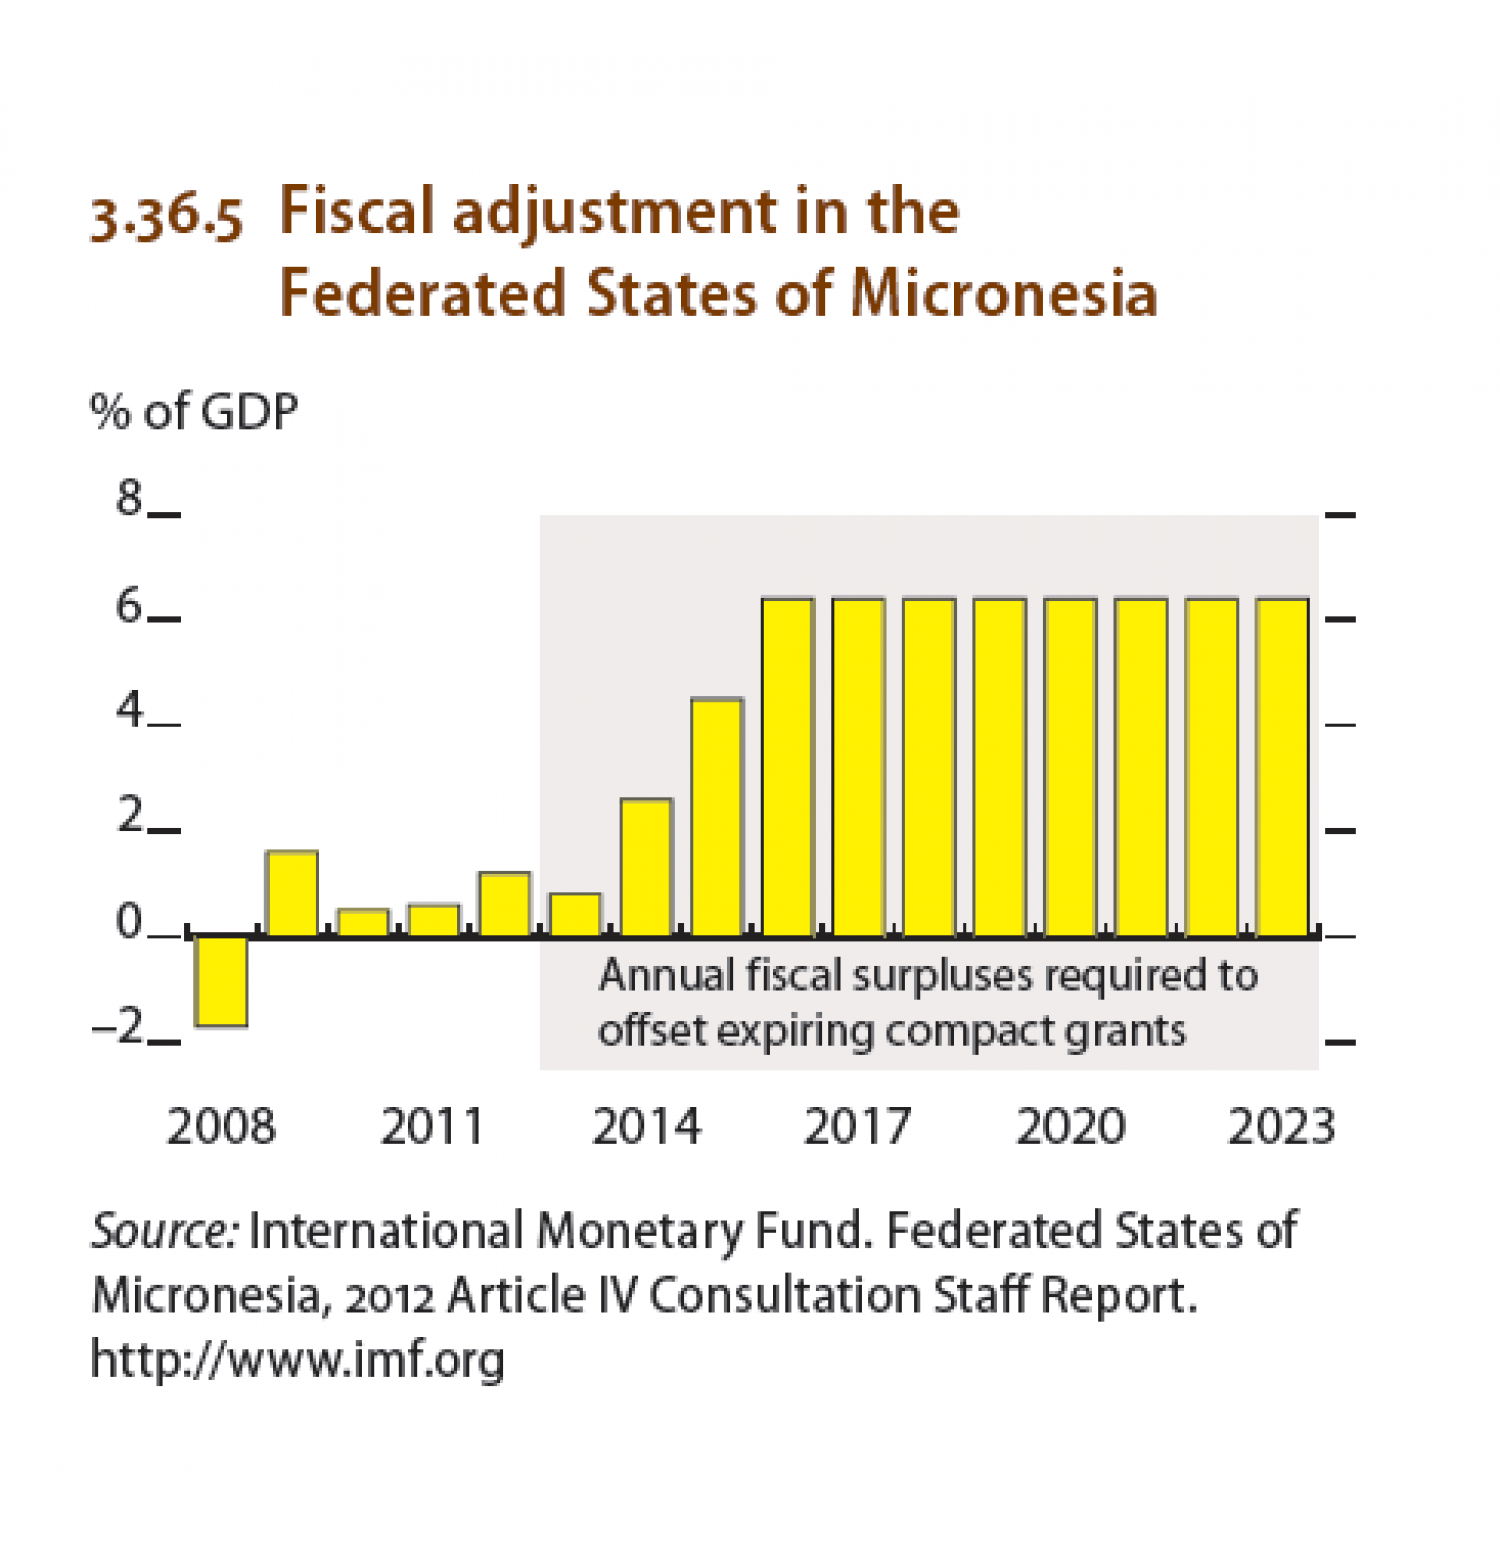 North Pacific Economies :Fiscal adjustment in the Federated States of Micronesia Infographic